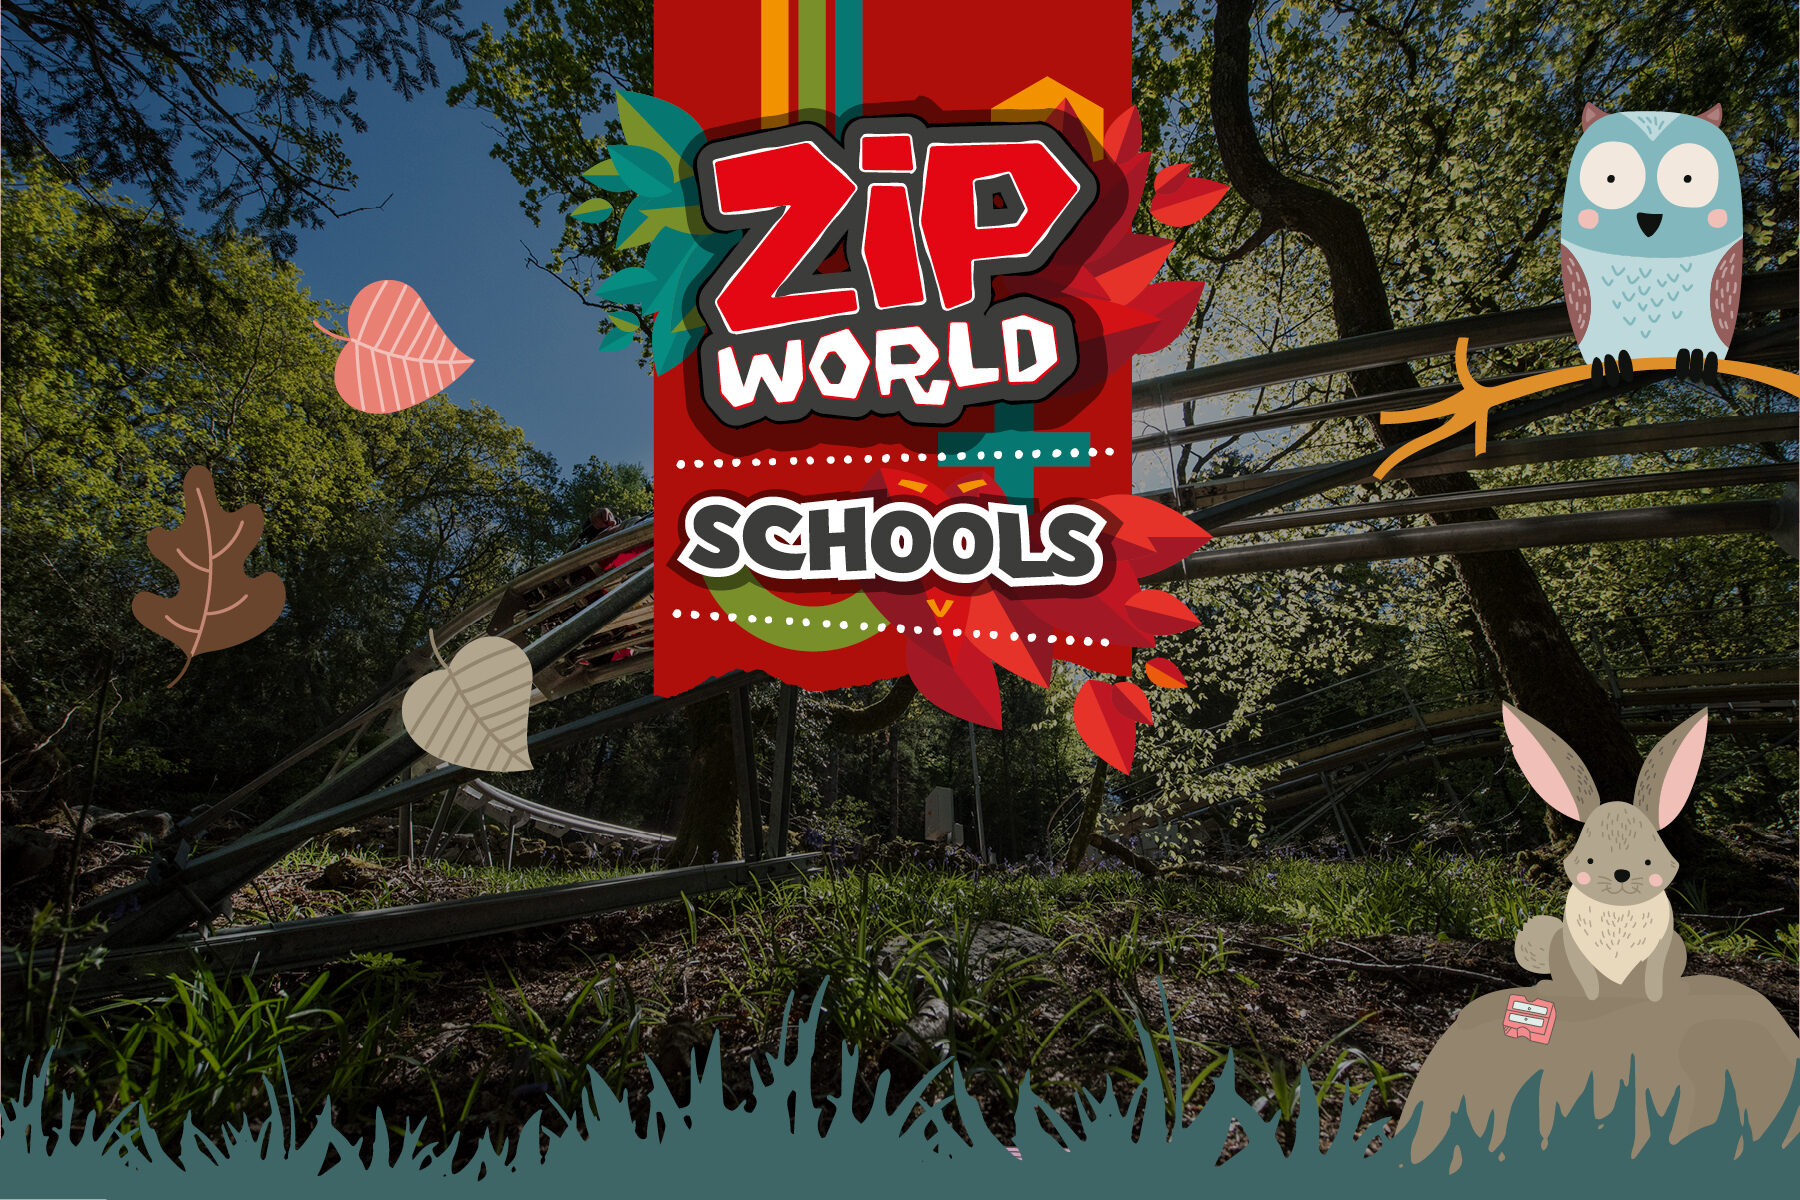 ZIP WORLD SCHOOLS SLIDER